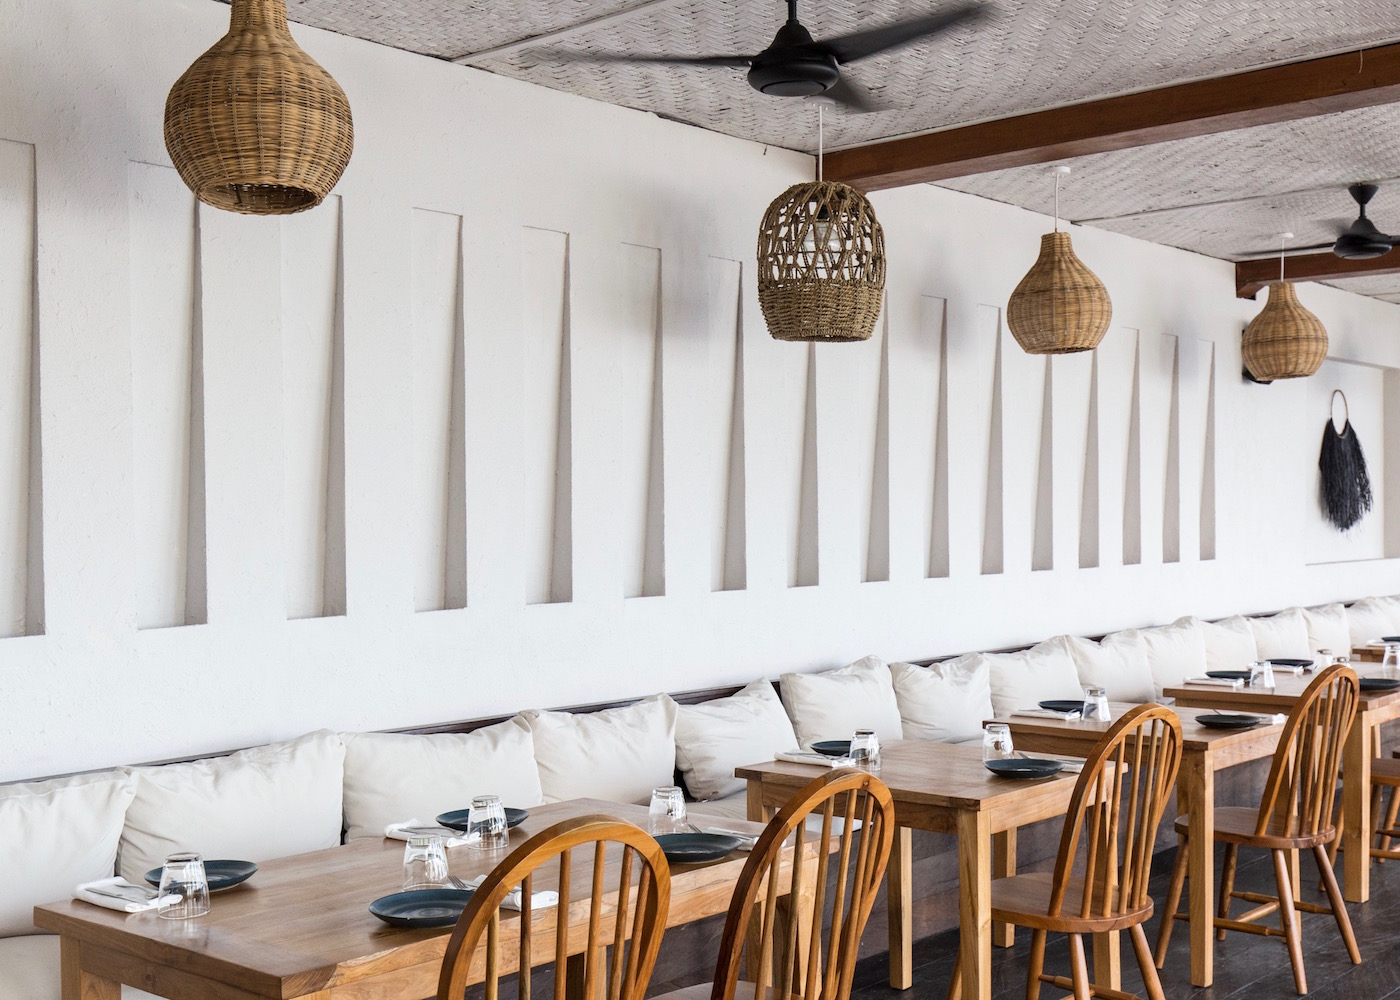 White interiors using local materials at The Lawn beach club in Canggu, Bali, Indonesia